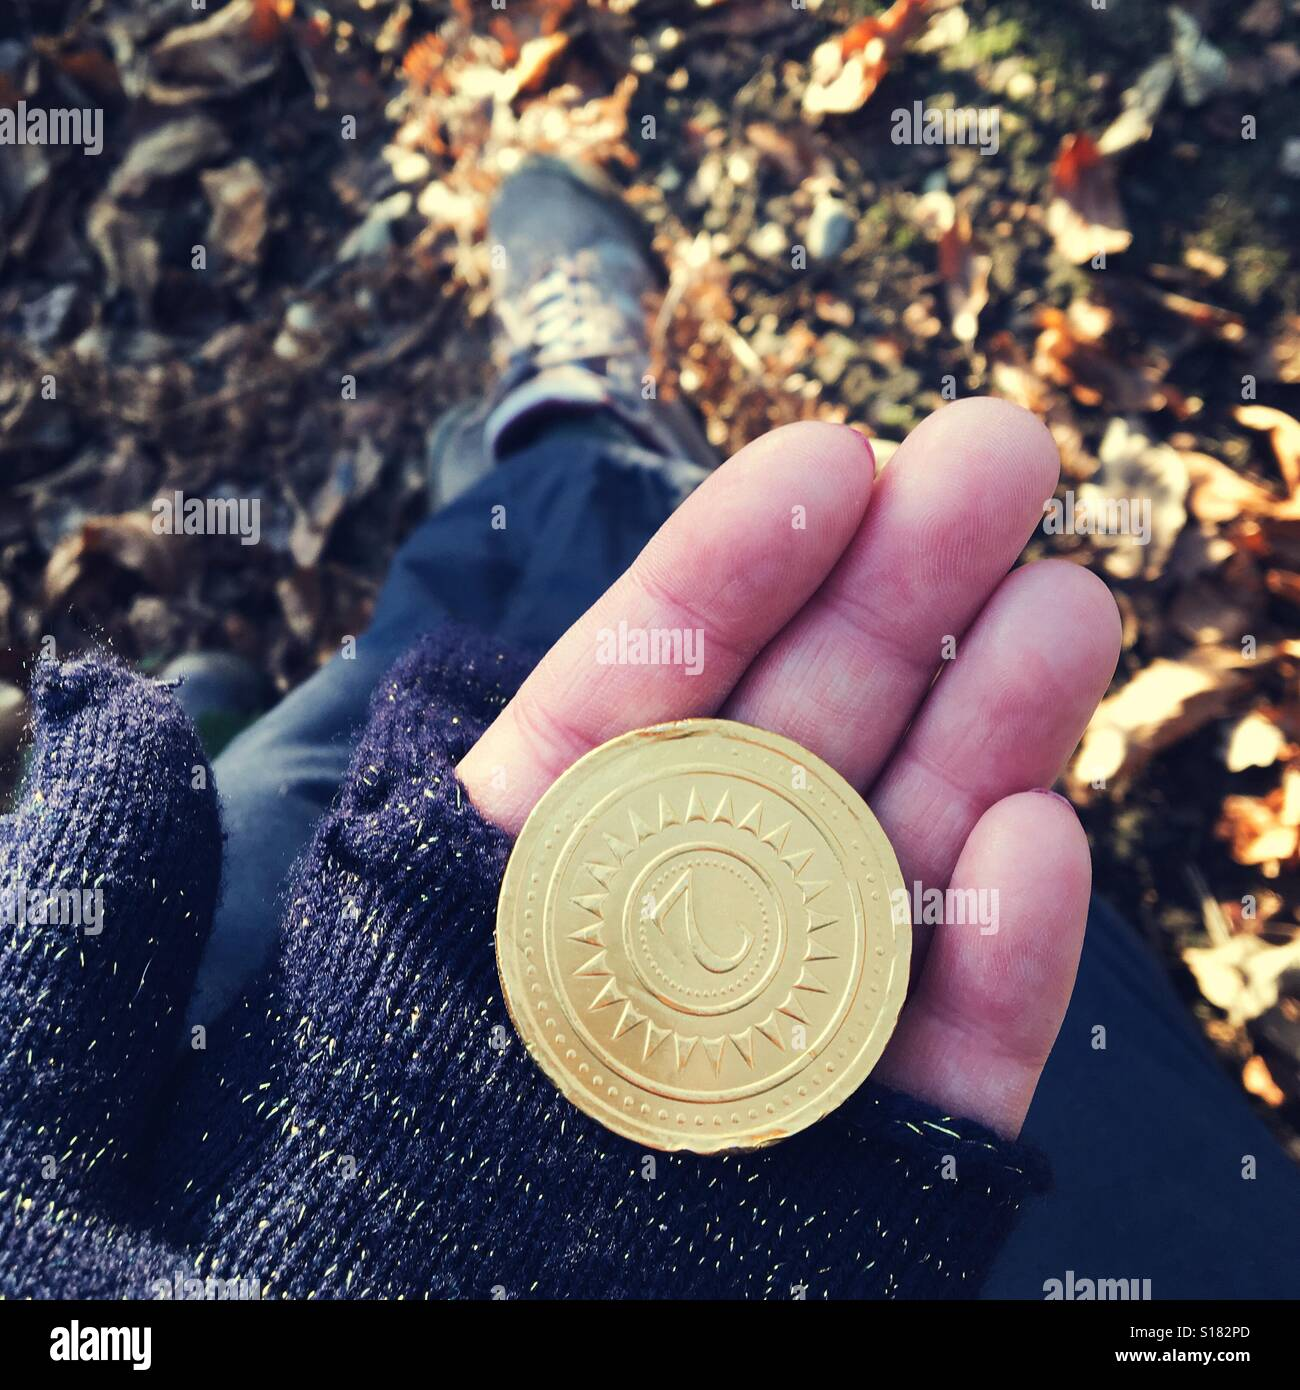 Chocolate coin on a country walk Stock Photo